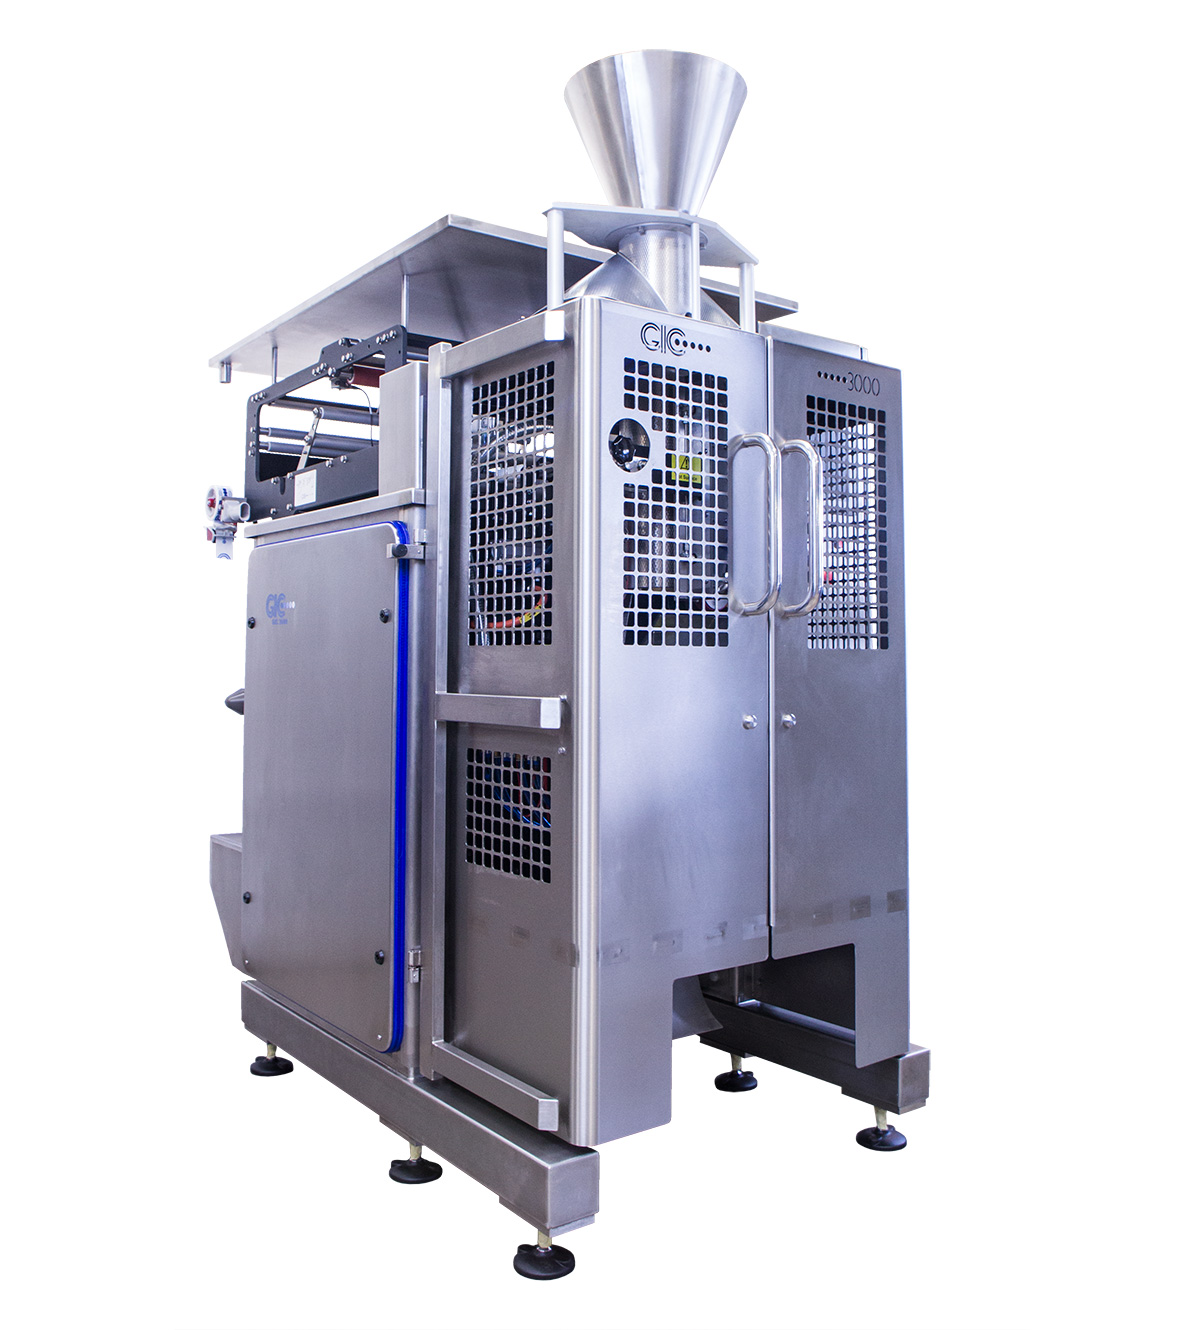 GIC 3000 Vertical Form Fill and Seal Machine